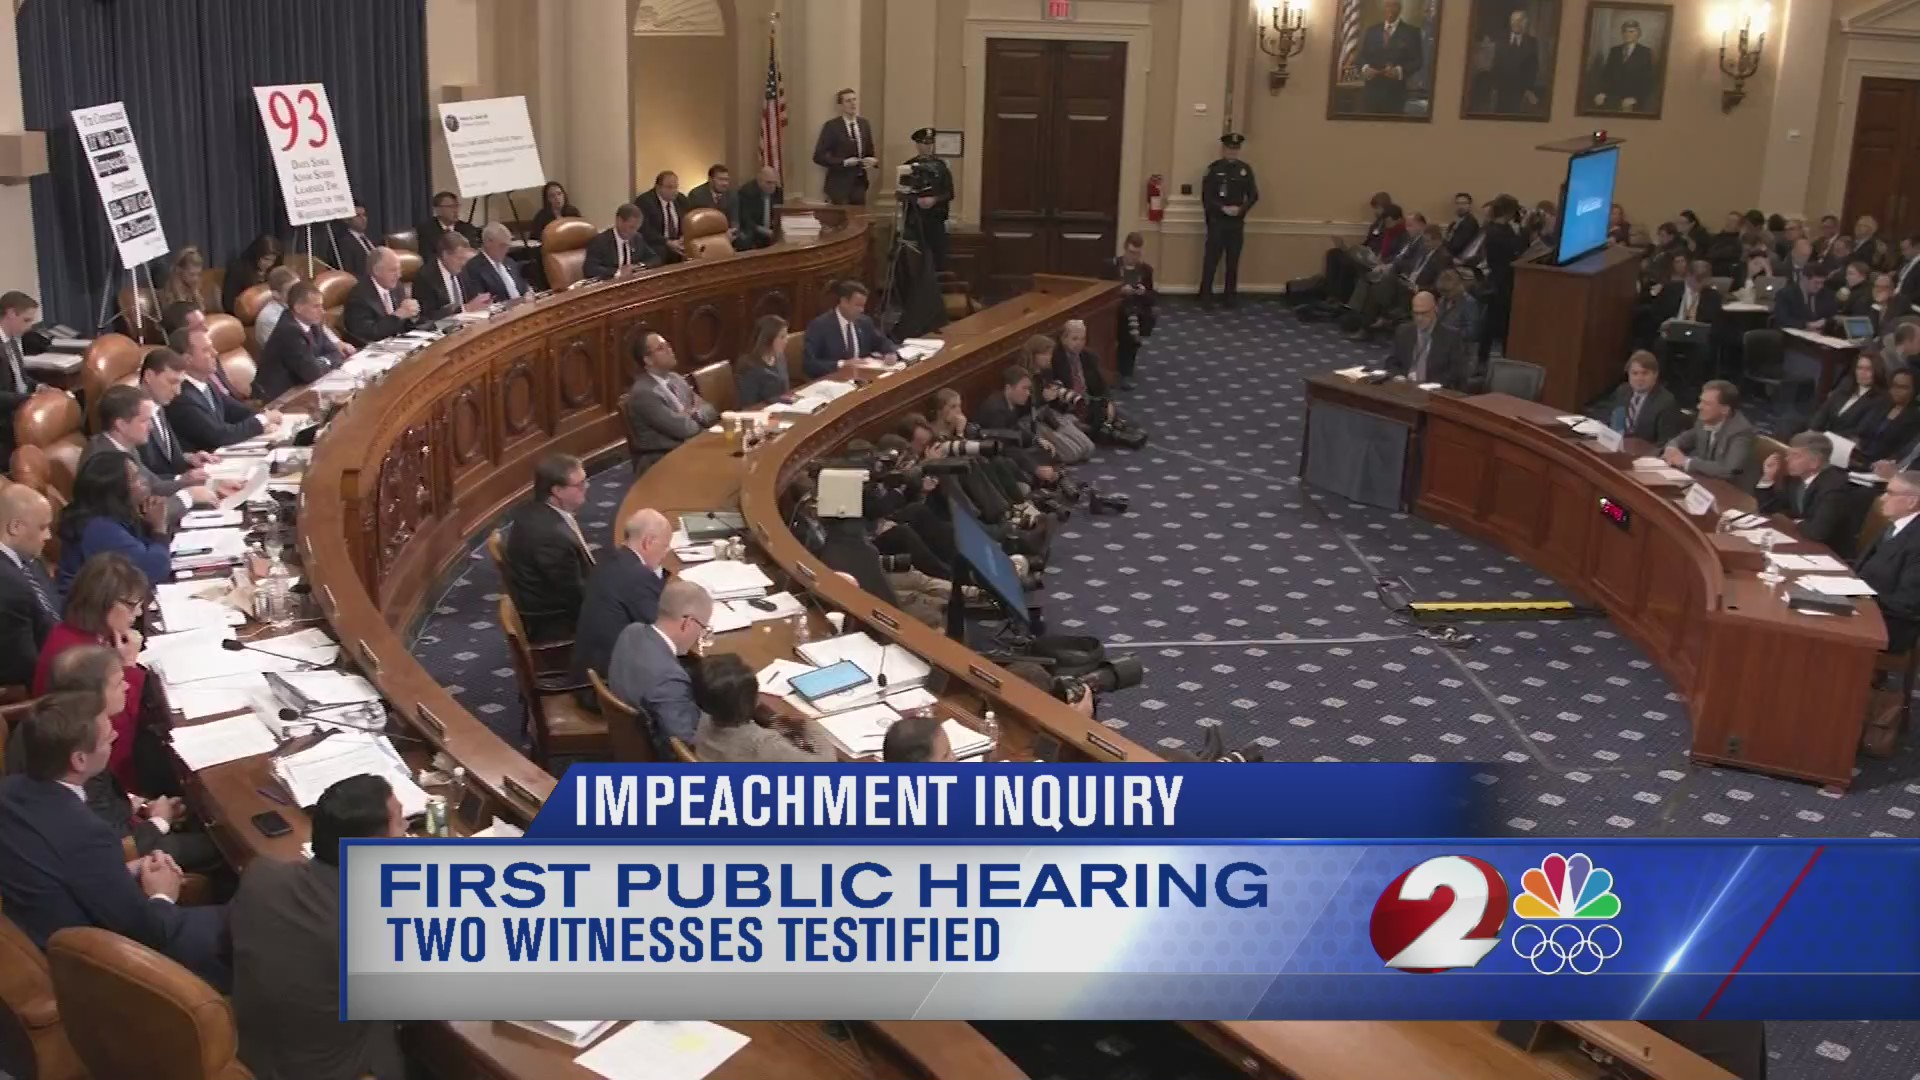 2 witnesses testify during first public impeachment hearing